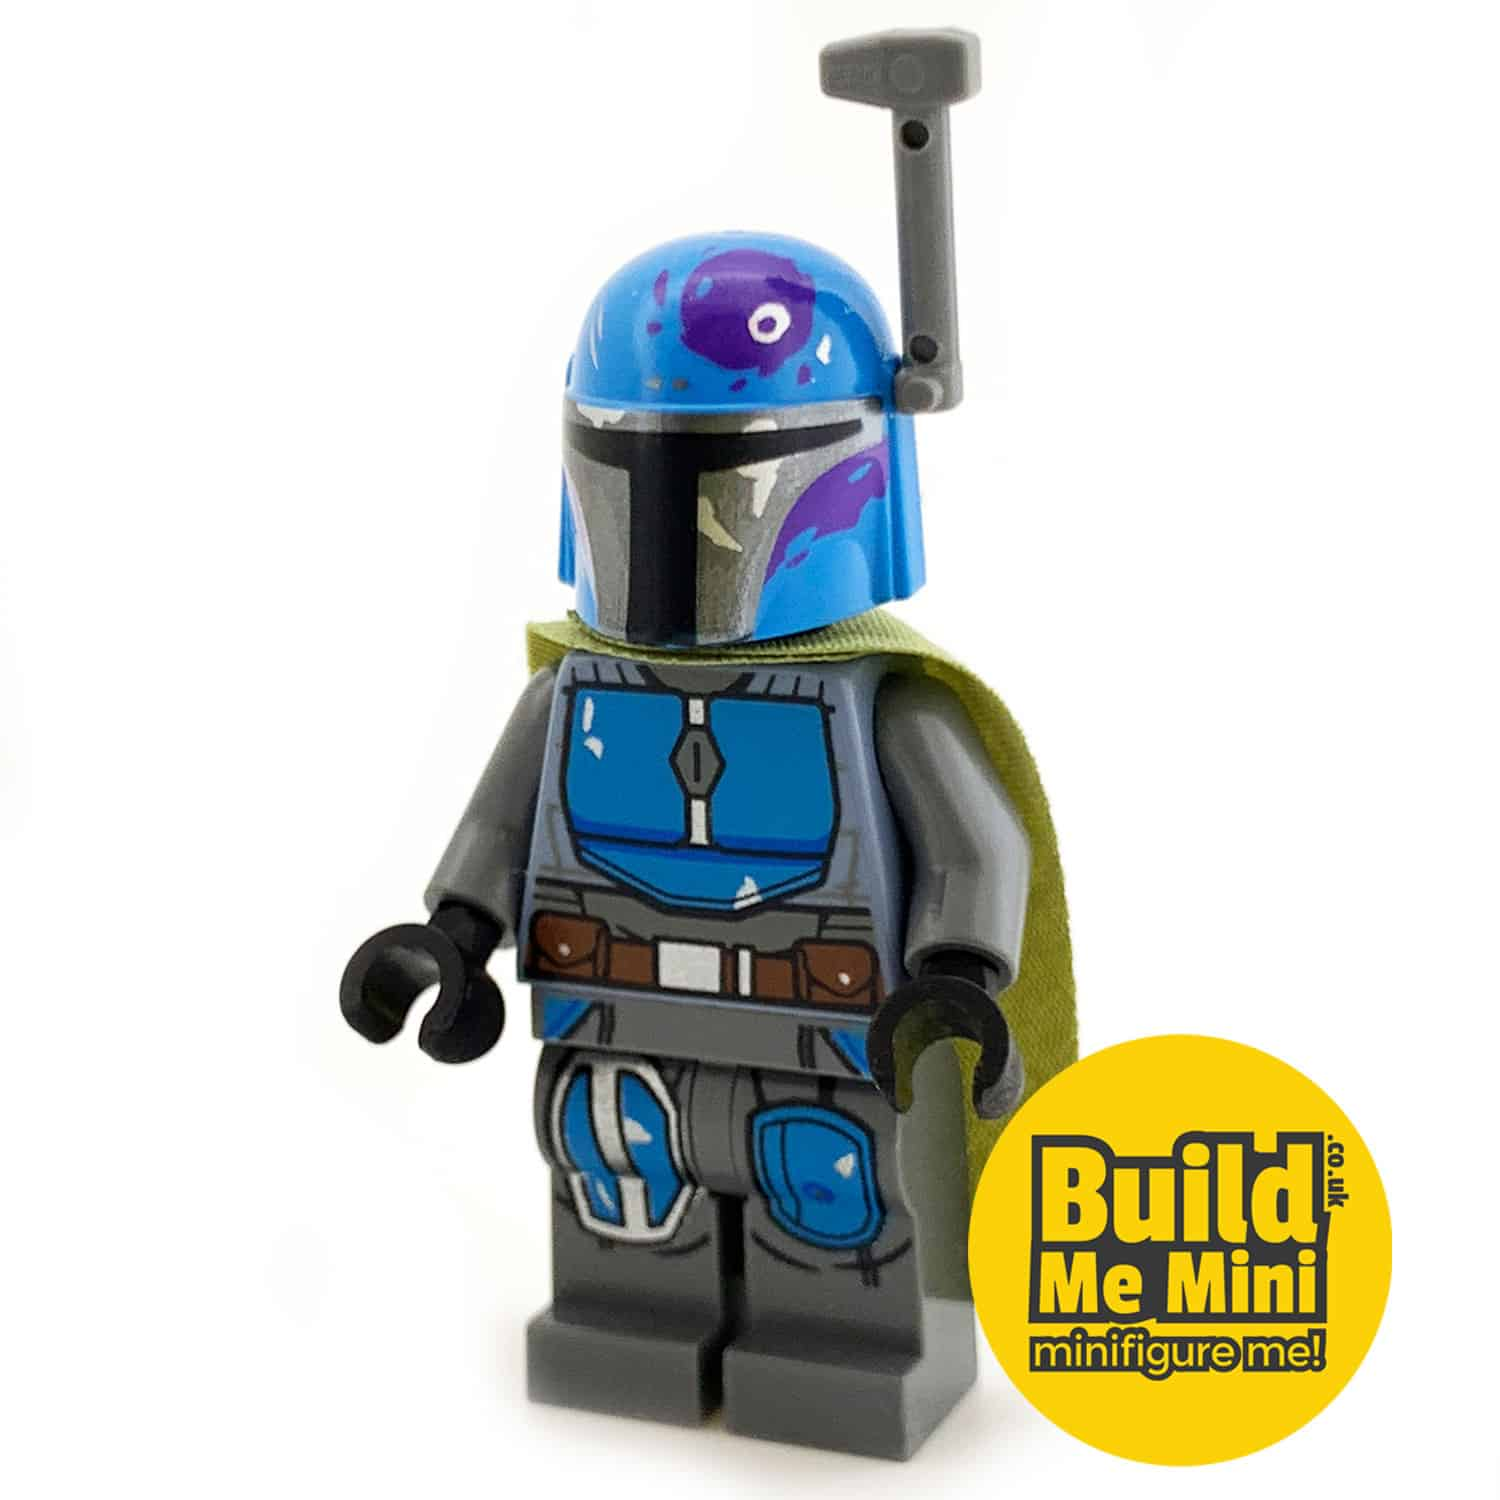 LEGO Star Wars – Mandalorian Armour – Teal Blue, Dark Grey